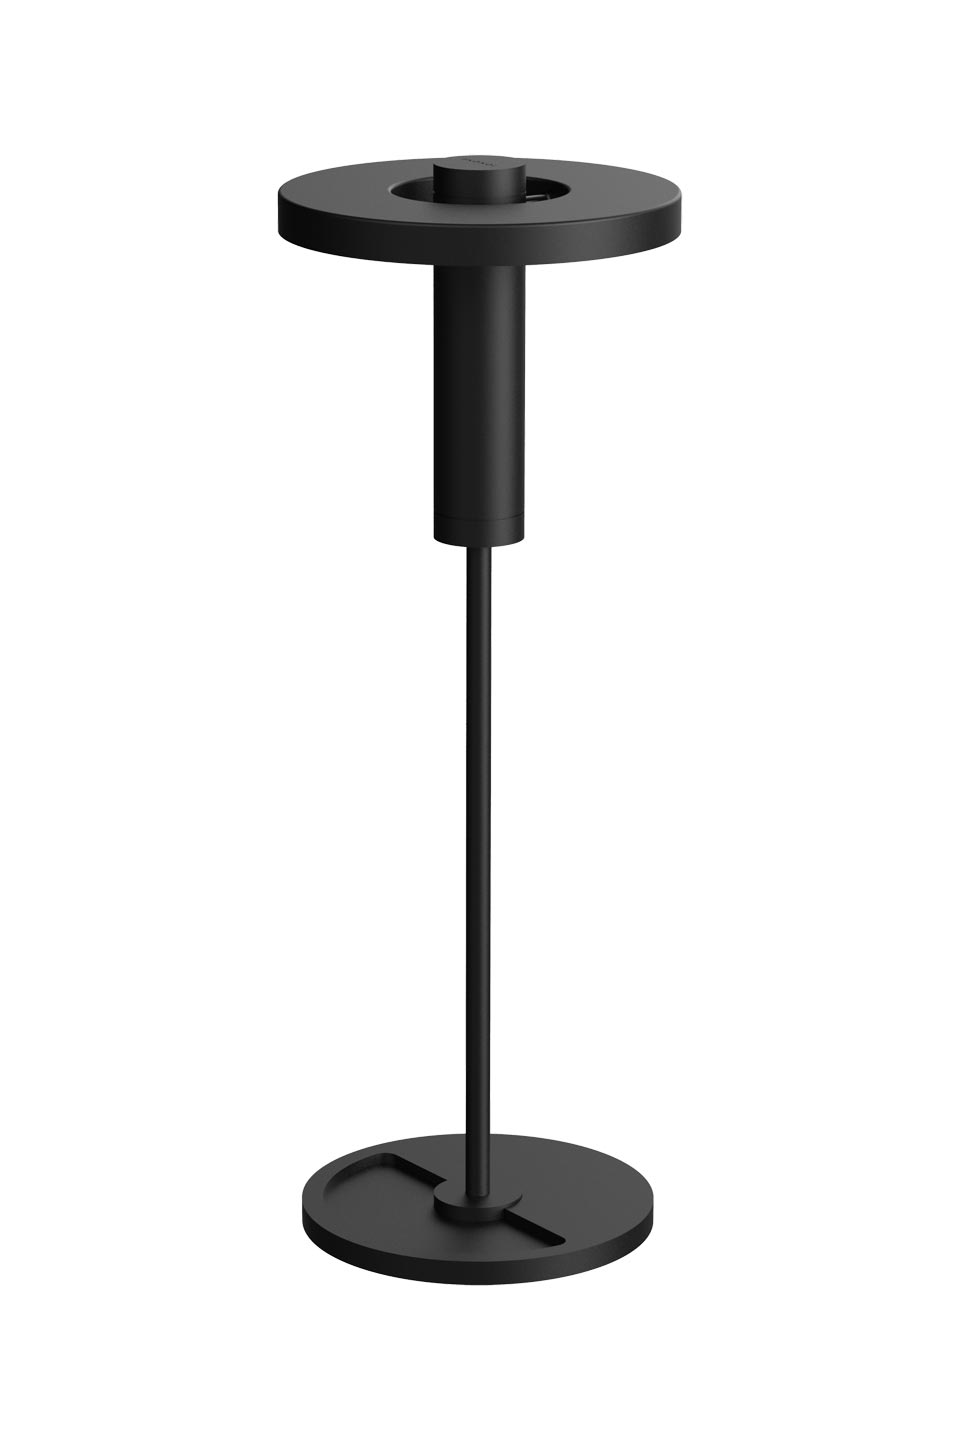 Beads table lamp in aluminum and black steel downlight. Tonone.